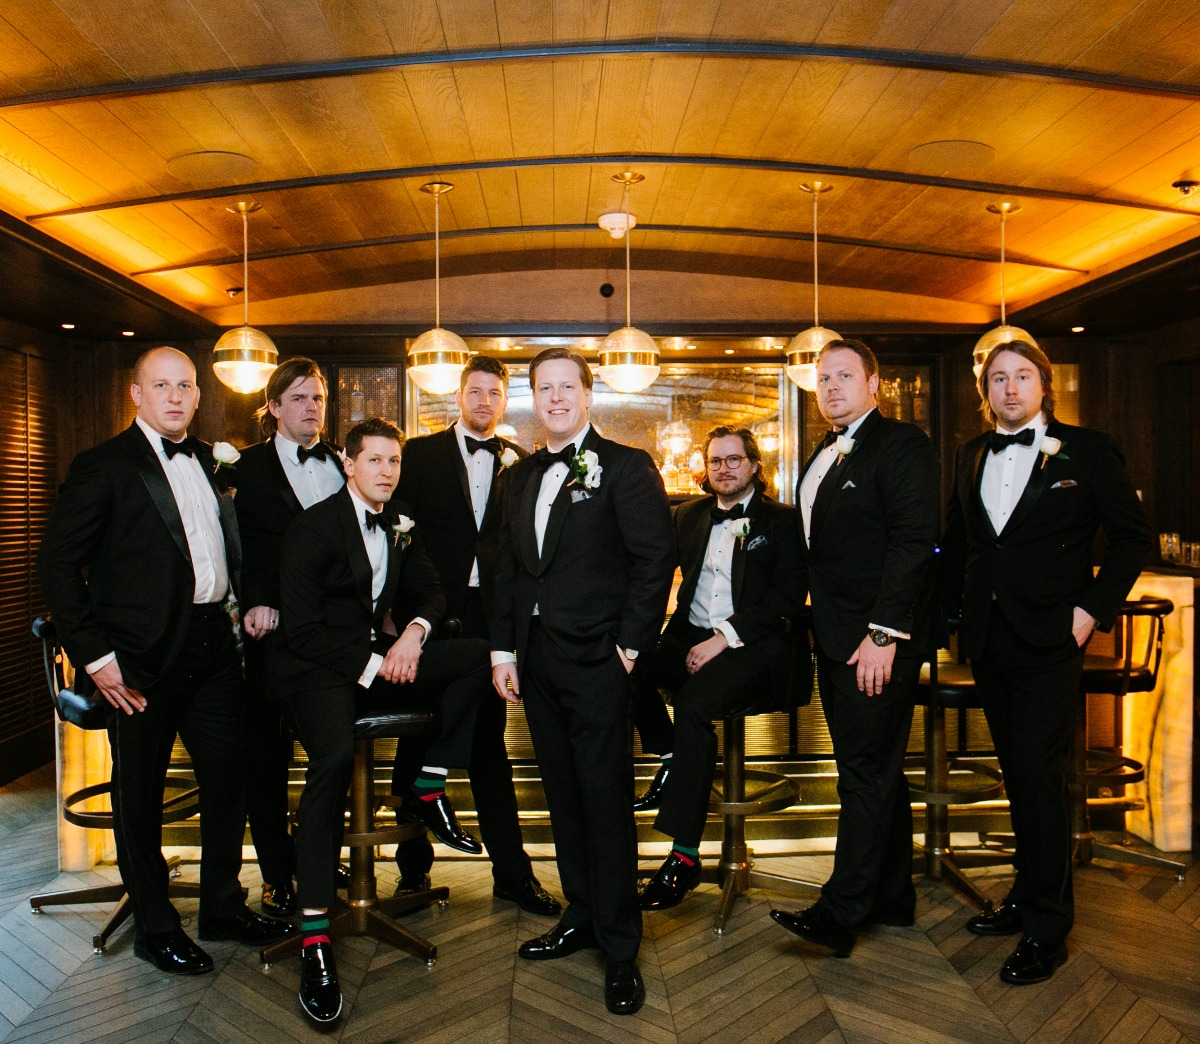 groom and groomsmen in classic tuxedos